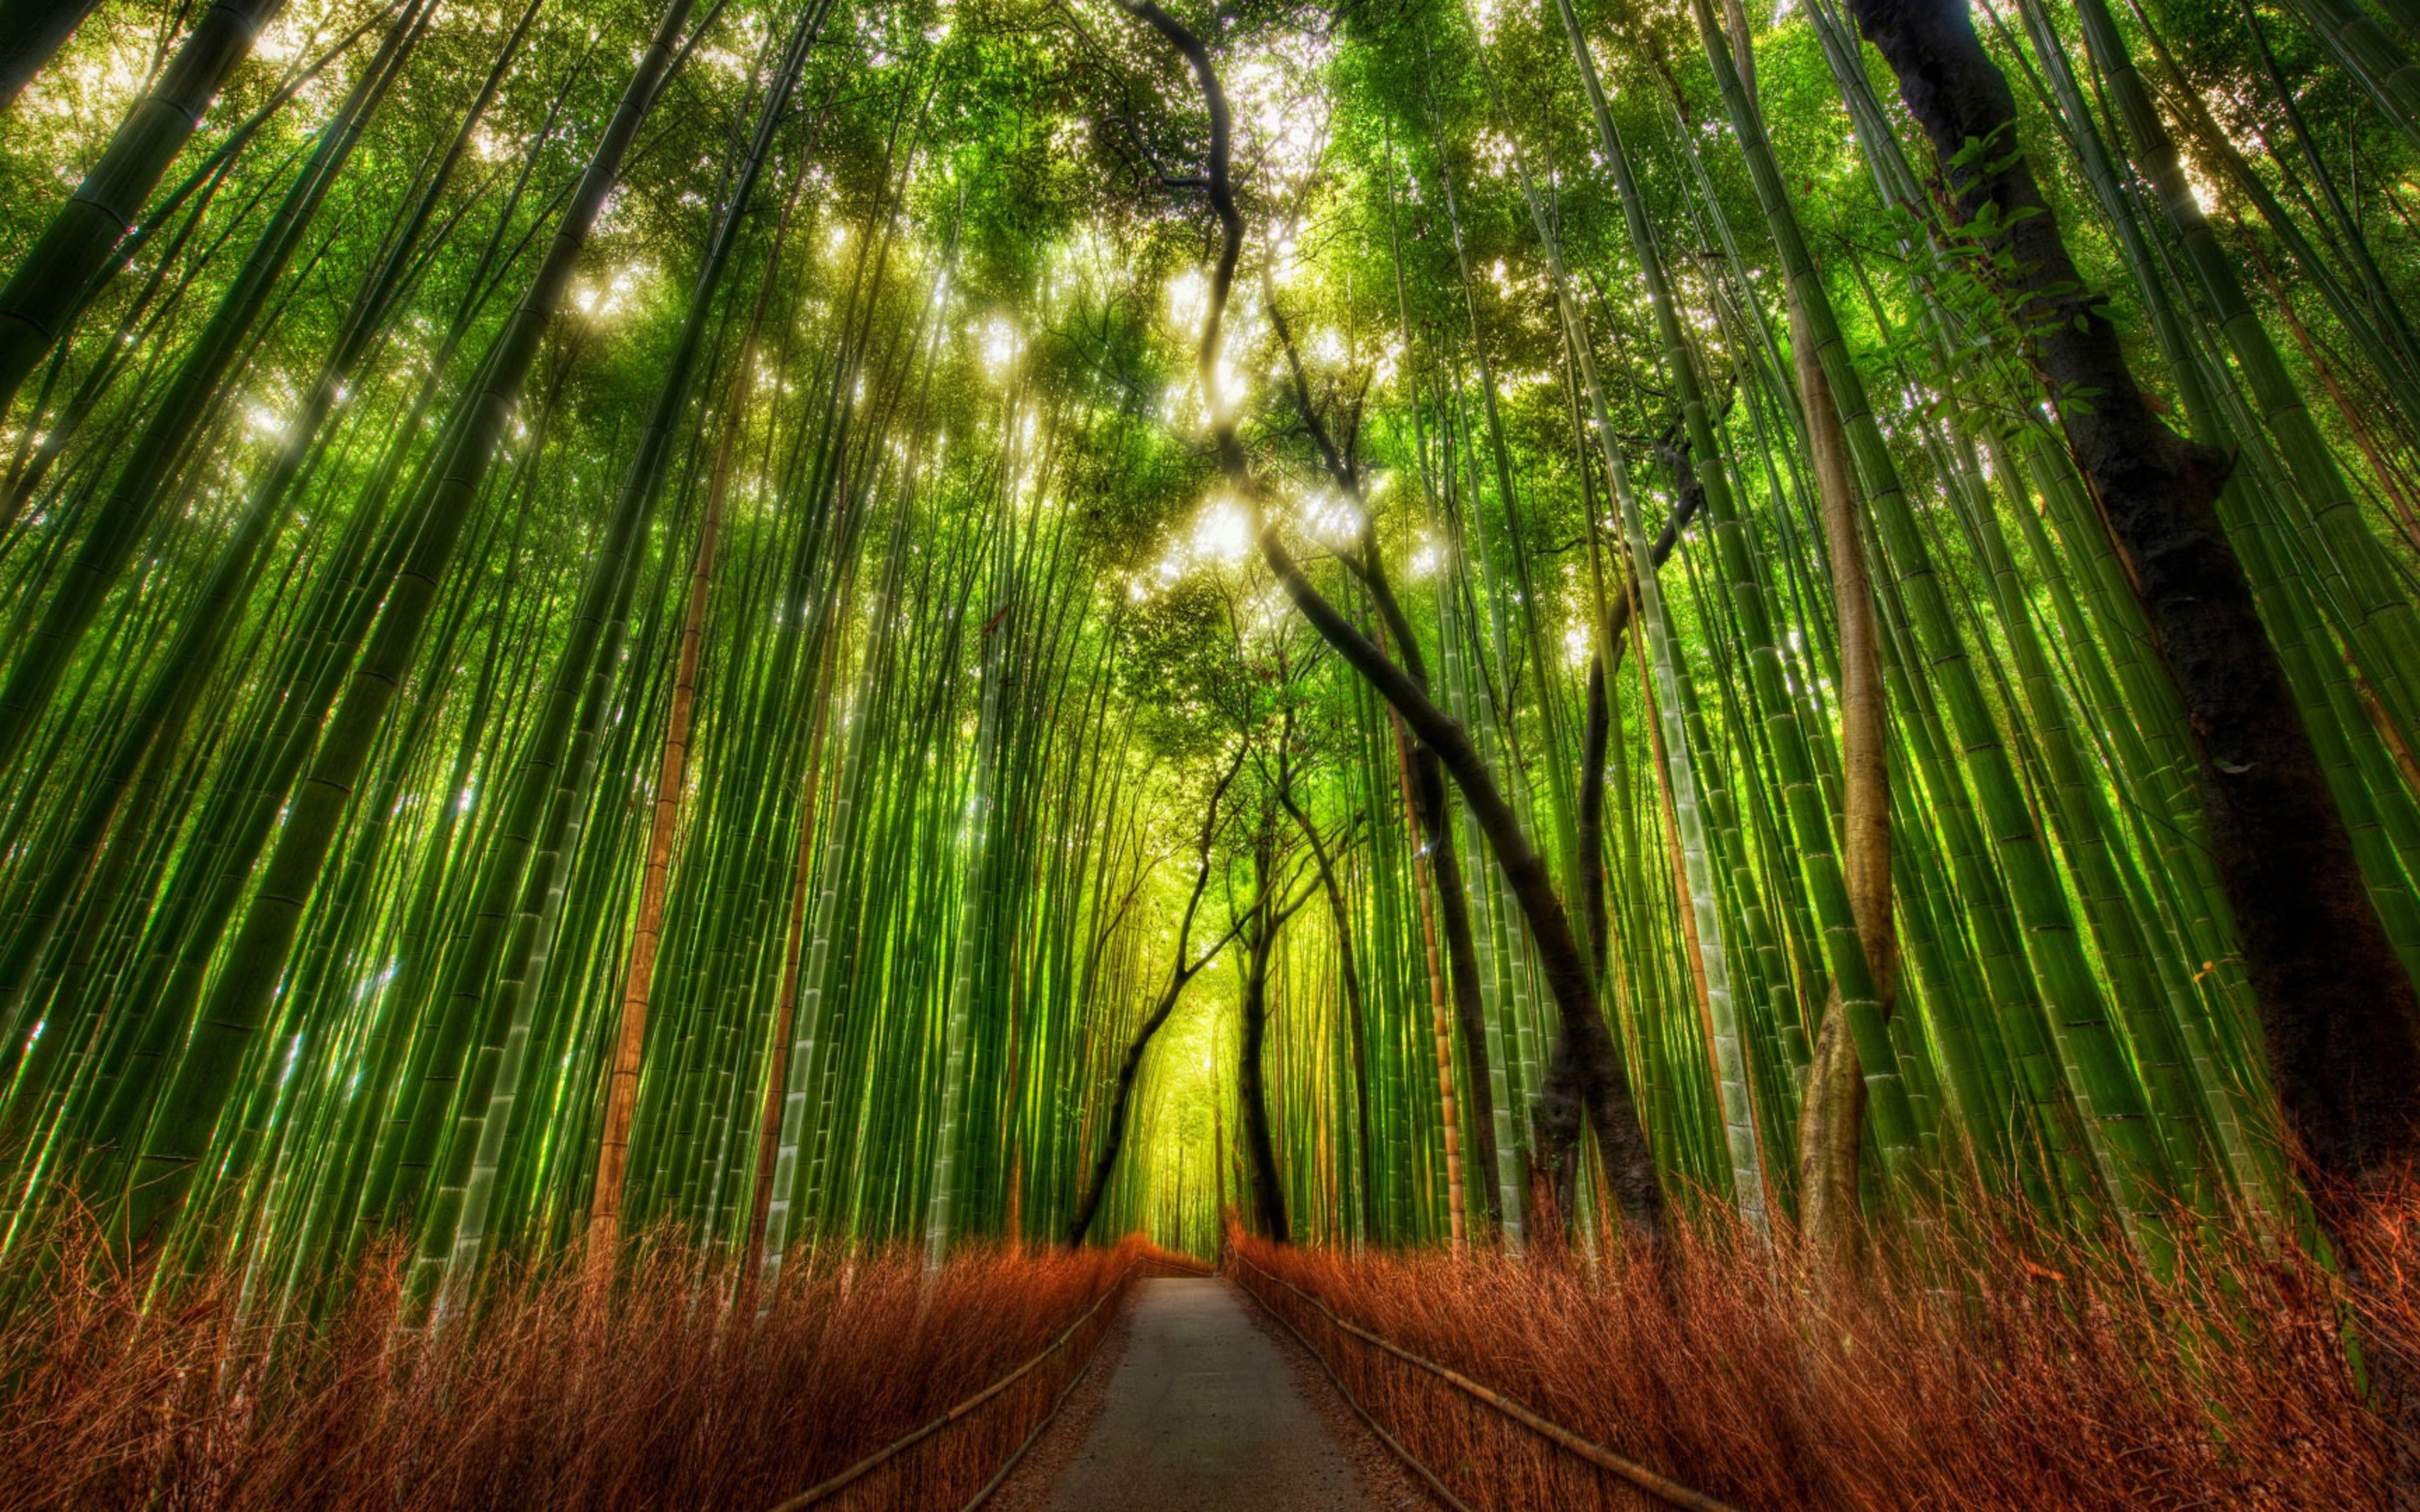 Wallpaper Download 5120x3200 Green And Red Bamboo Forest In The Sunlight Forests Wallpapers Nature Wall Bamboo Forest Japan Bamboo Forest Breathtaking Places